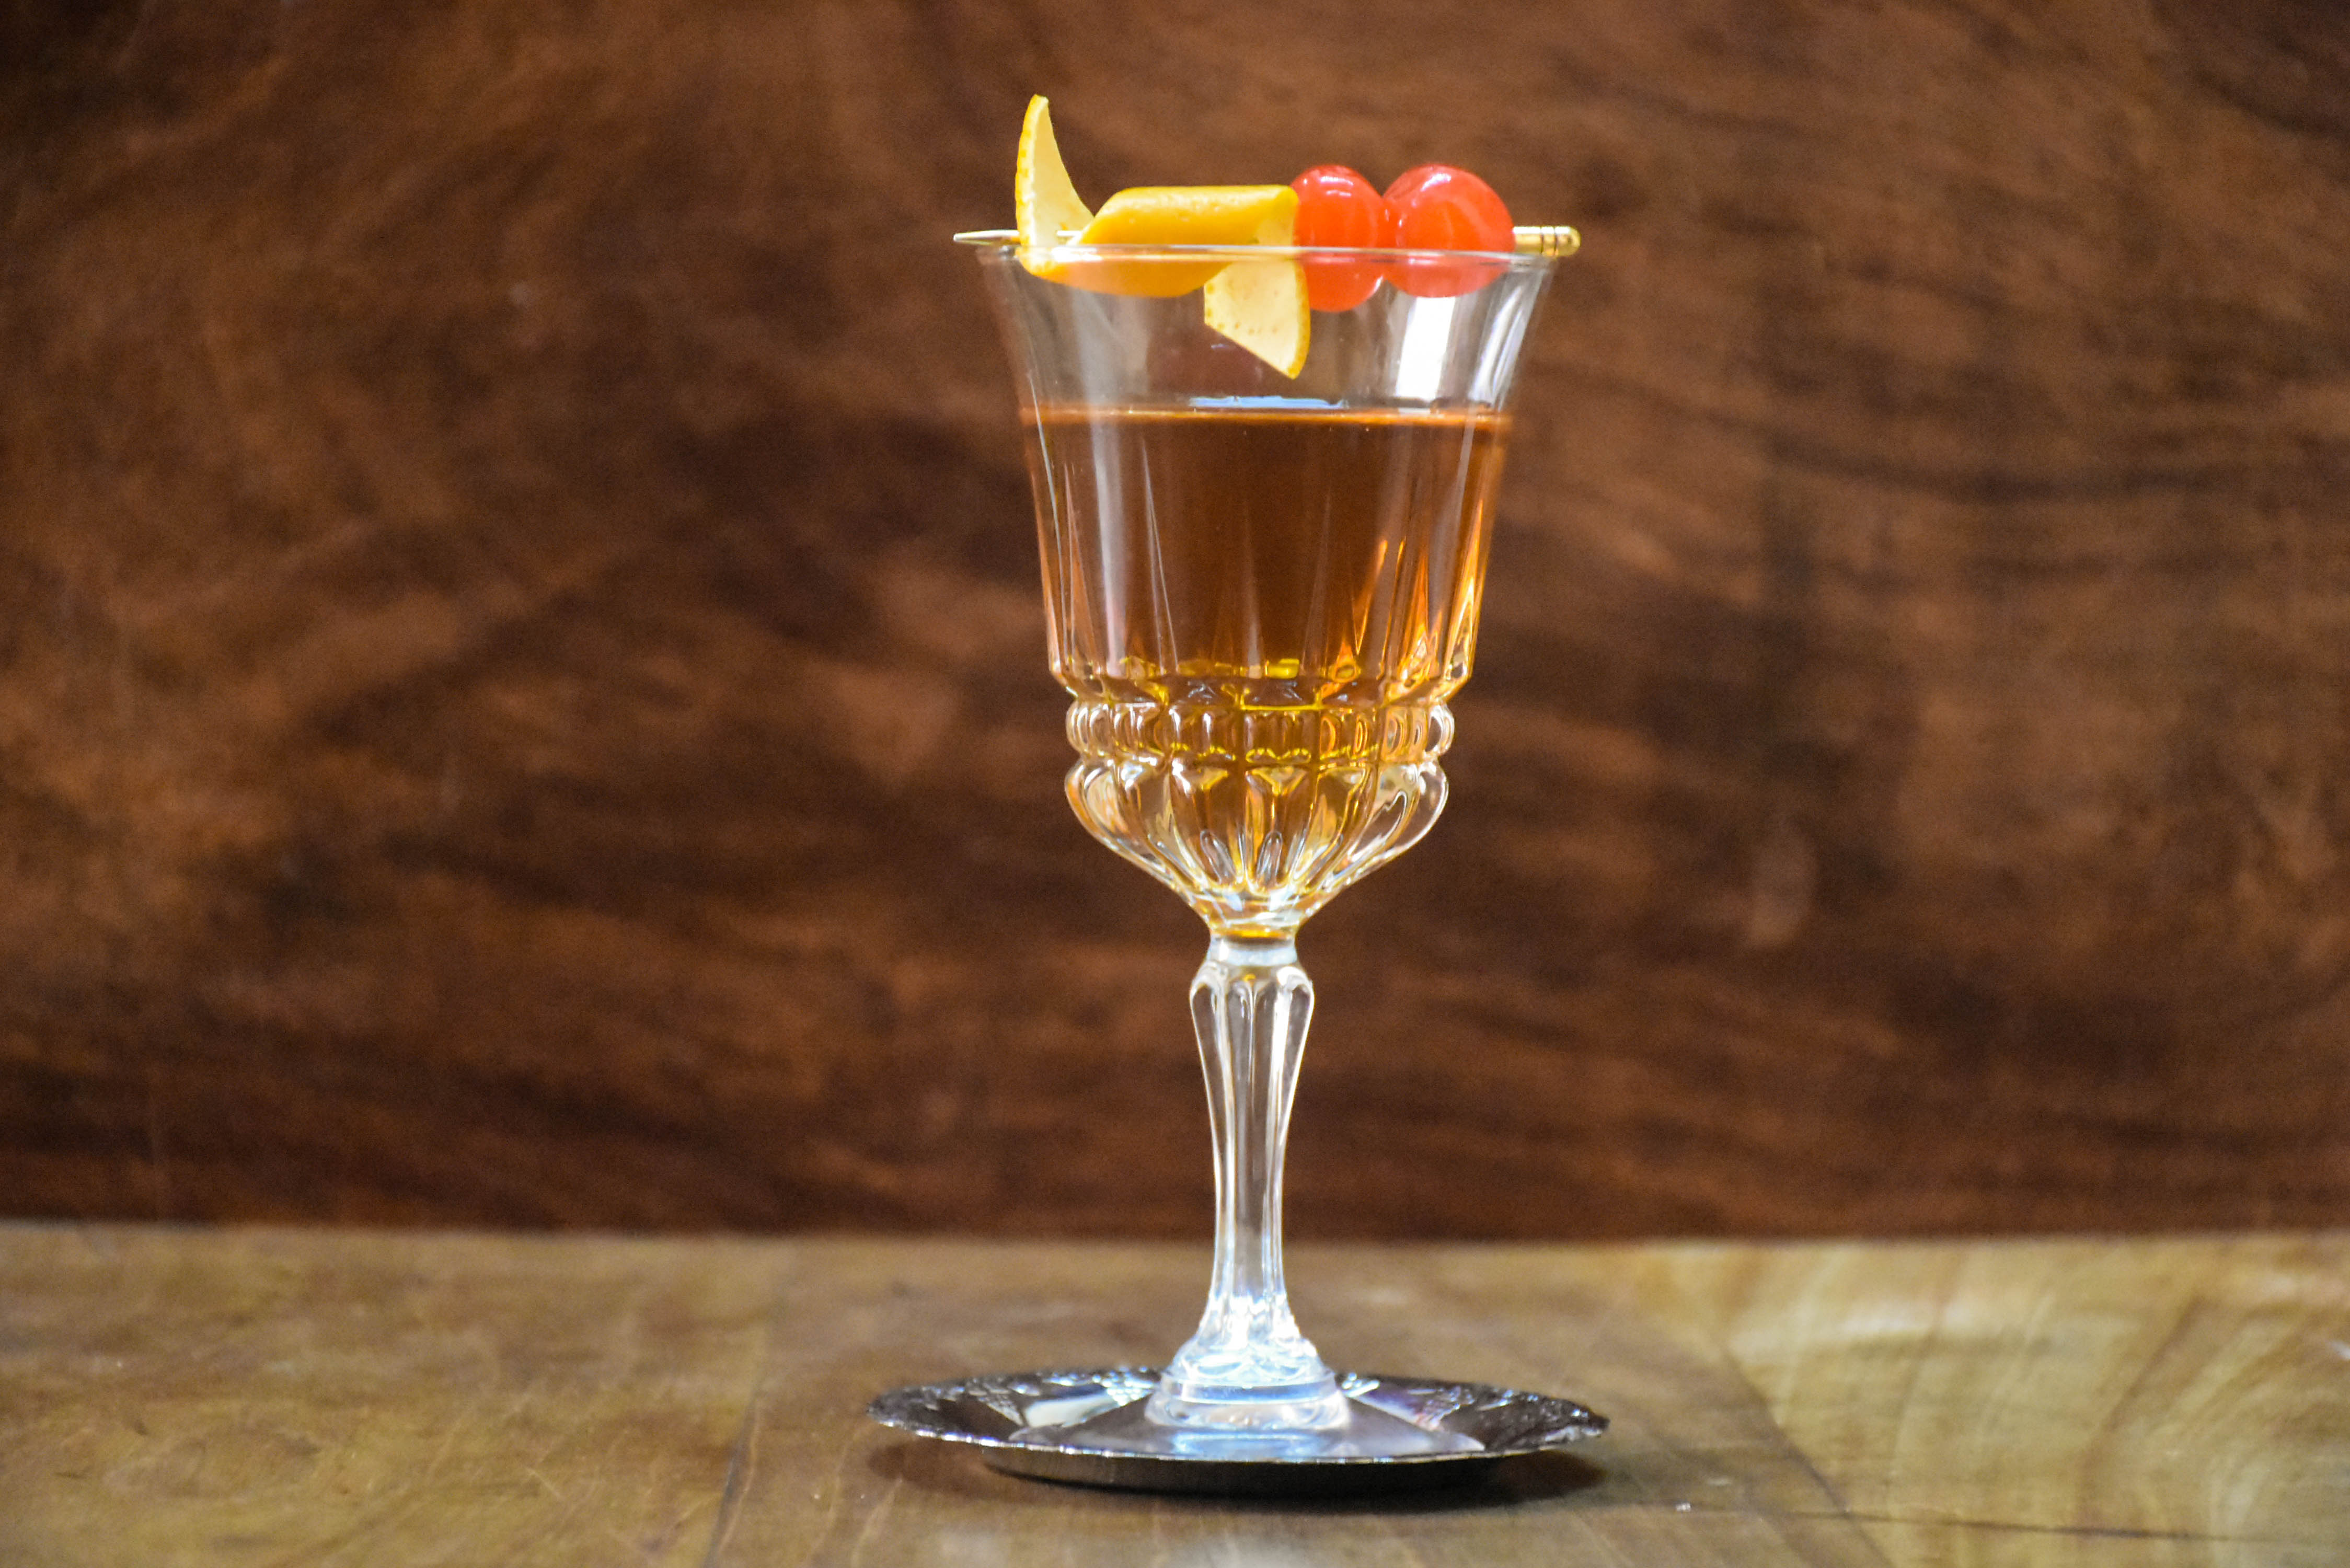 New Year's cocktail recipe video – Here's how to make a maple Manhattan